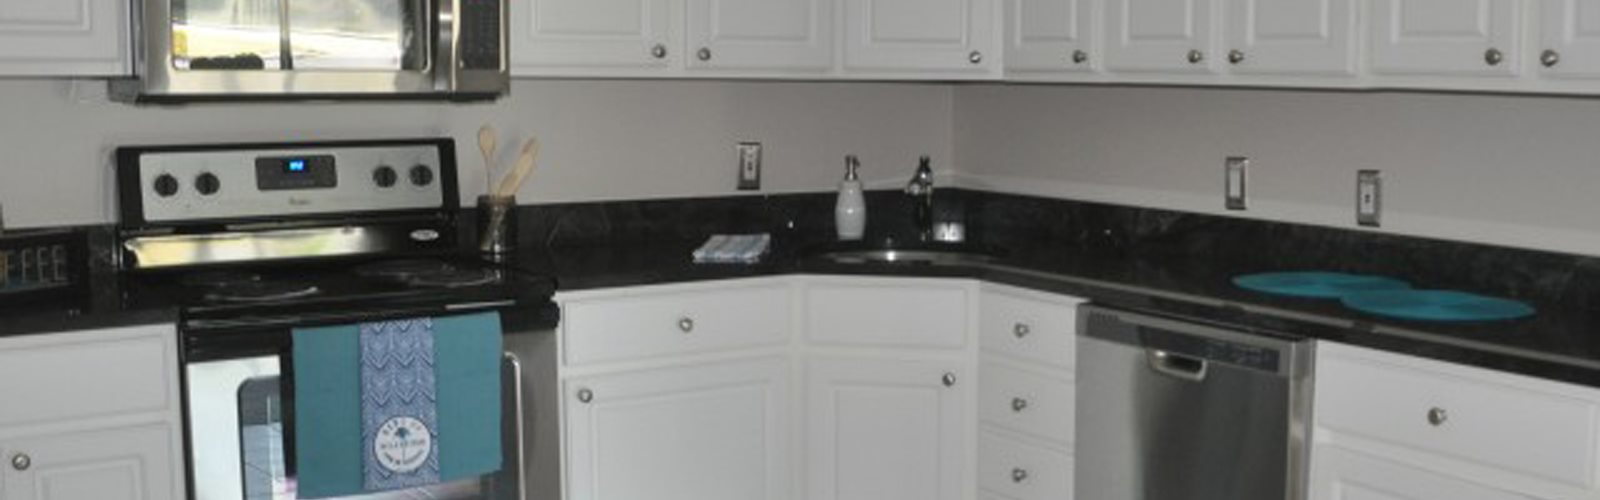 Granite Countertops at Summit Terrace, Maine, 04106